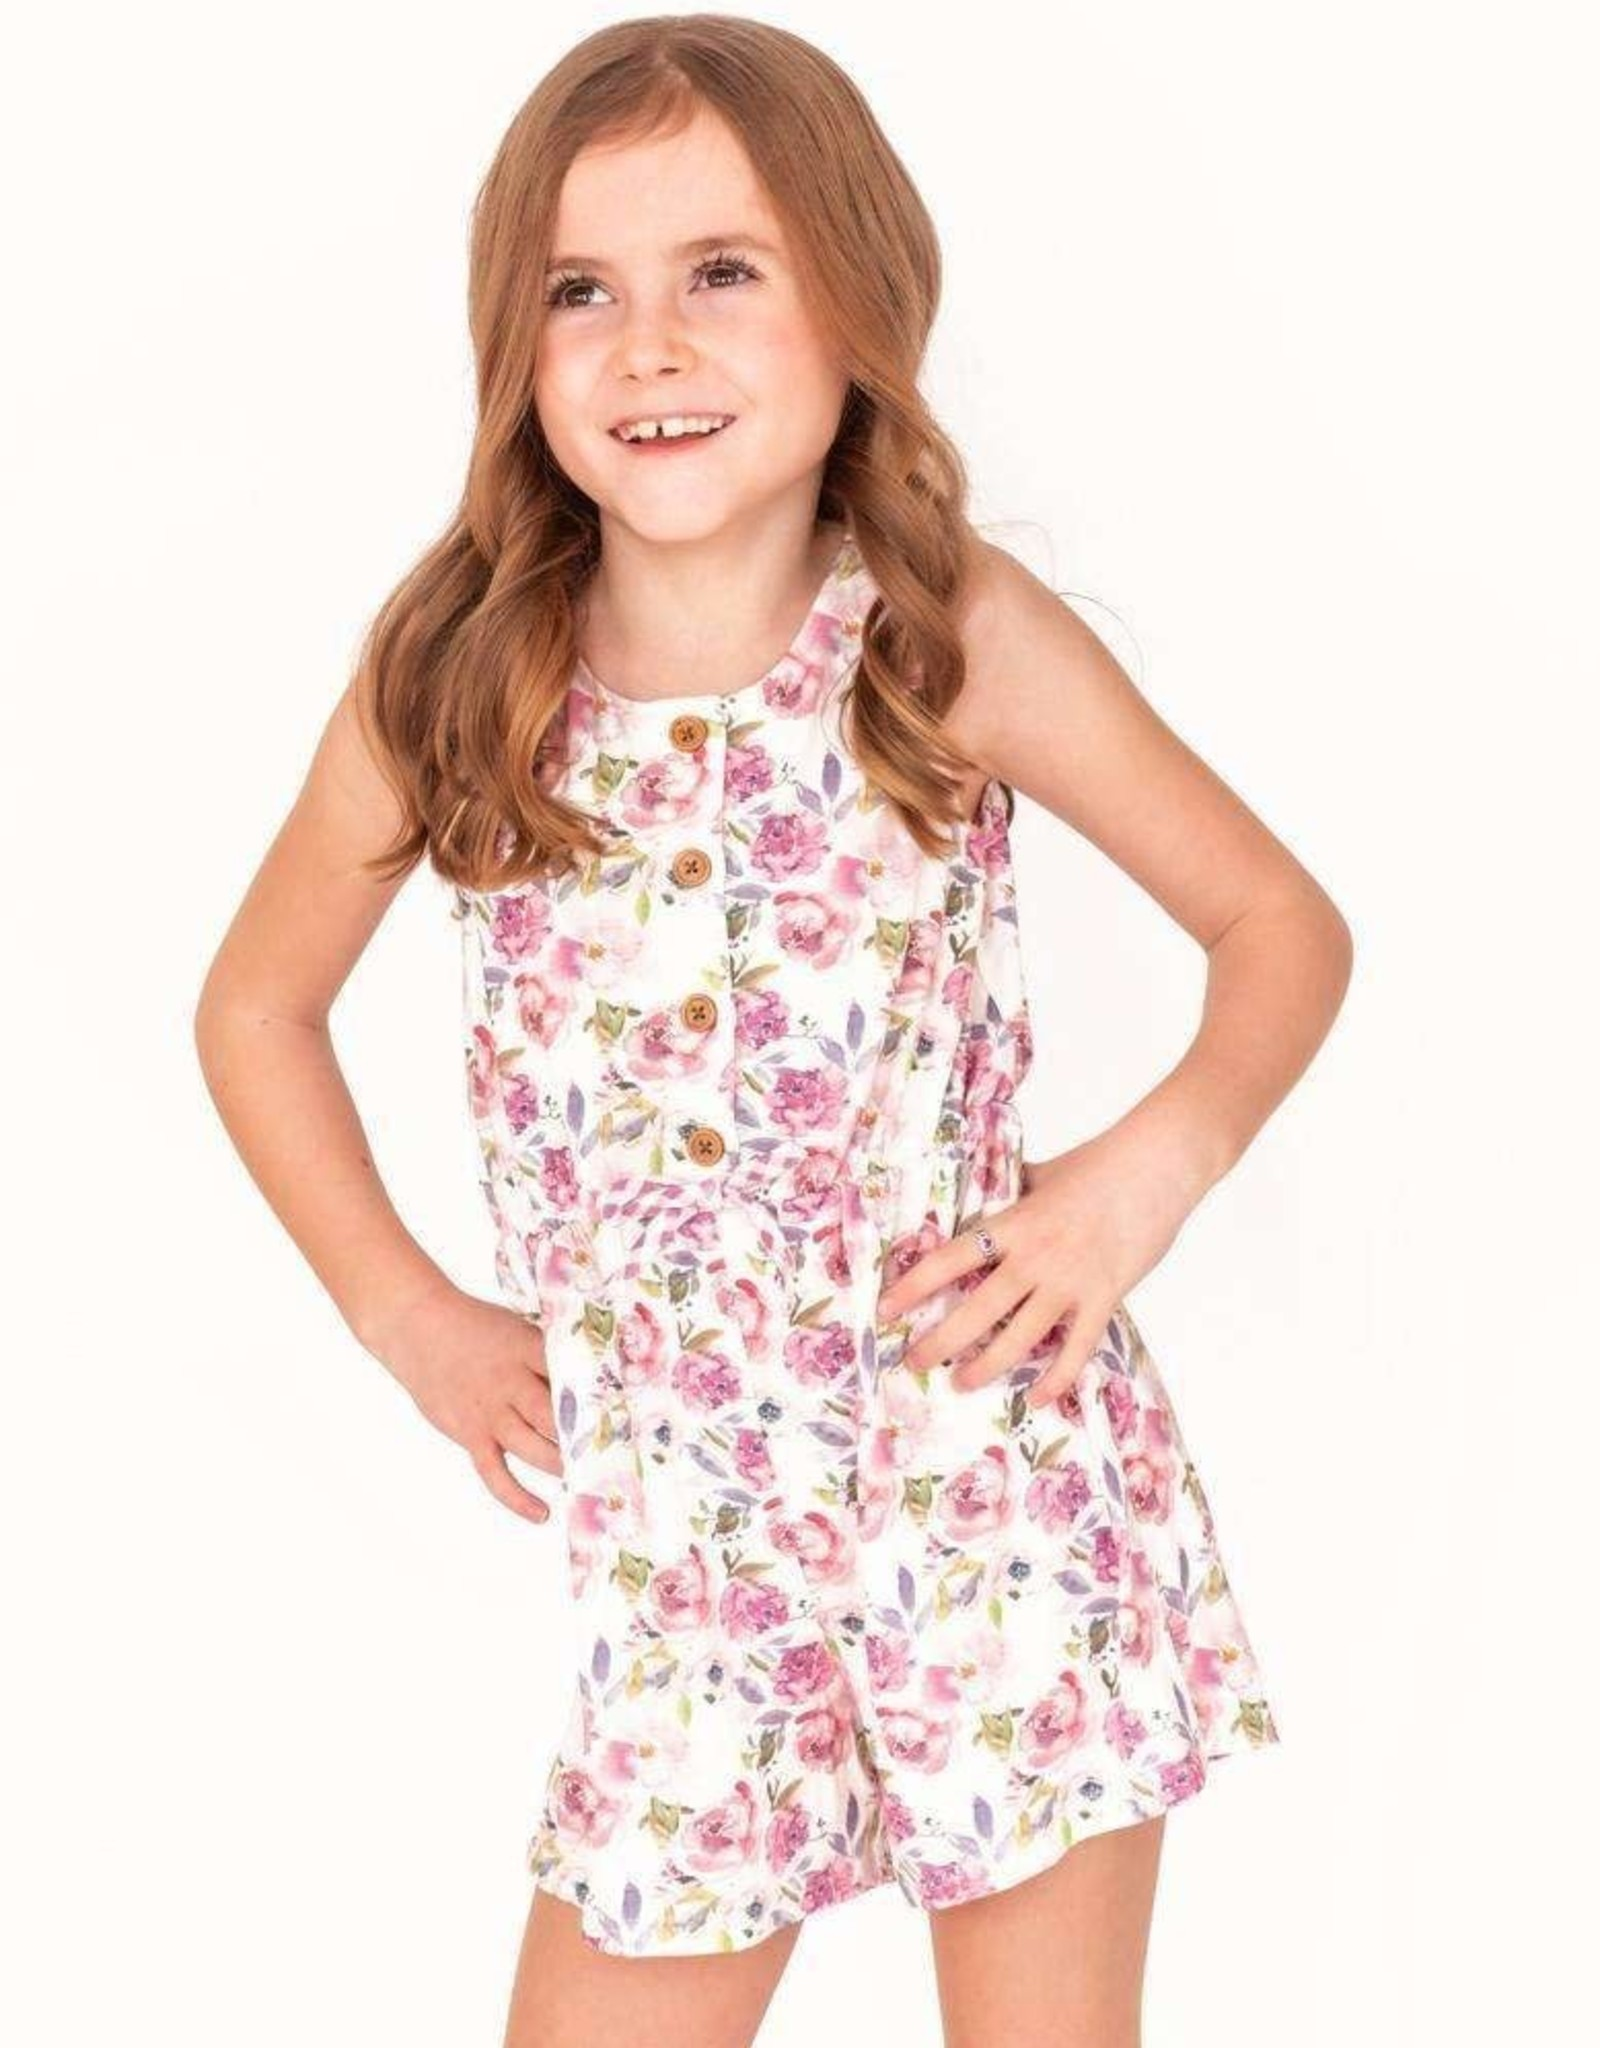 Charlies Project Violet Blossom Bamboo Girls Short Romper